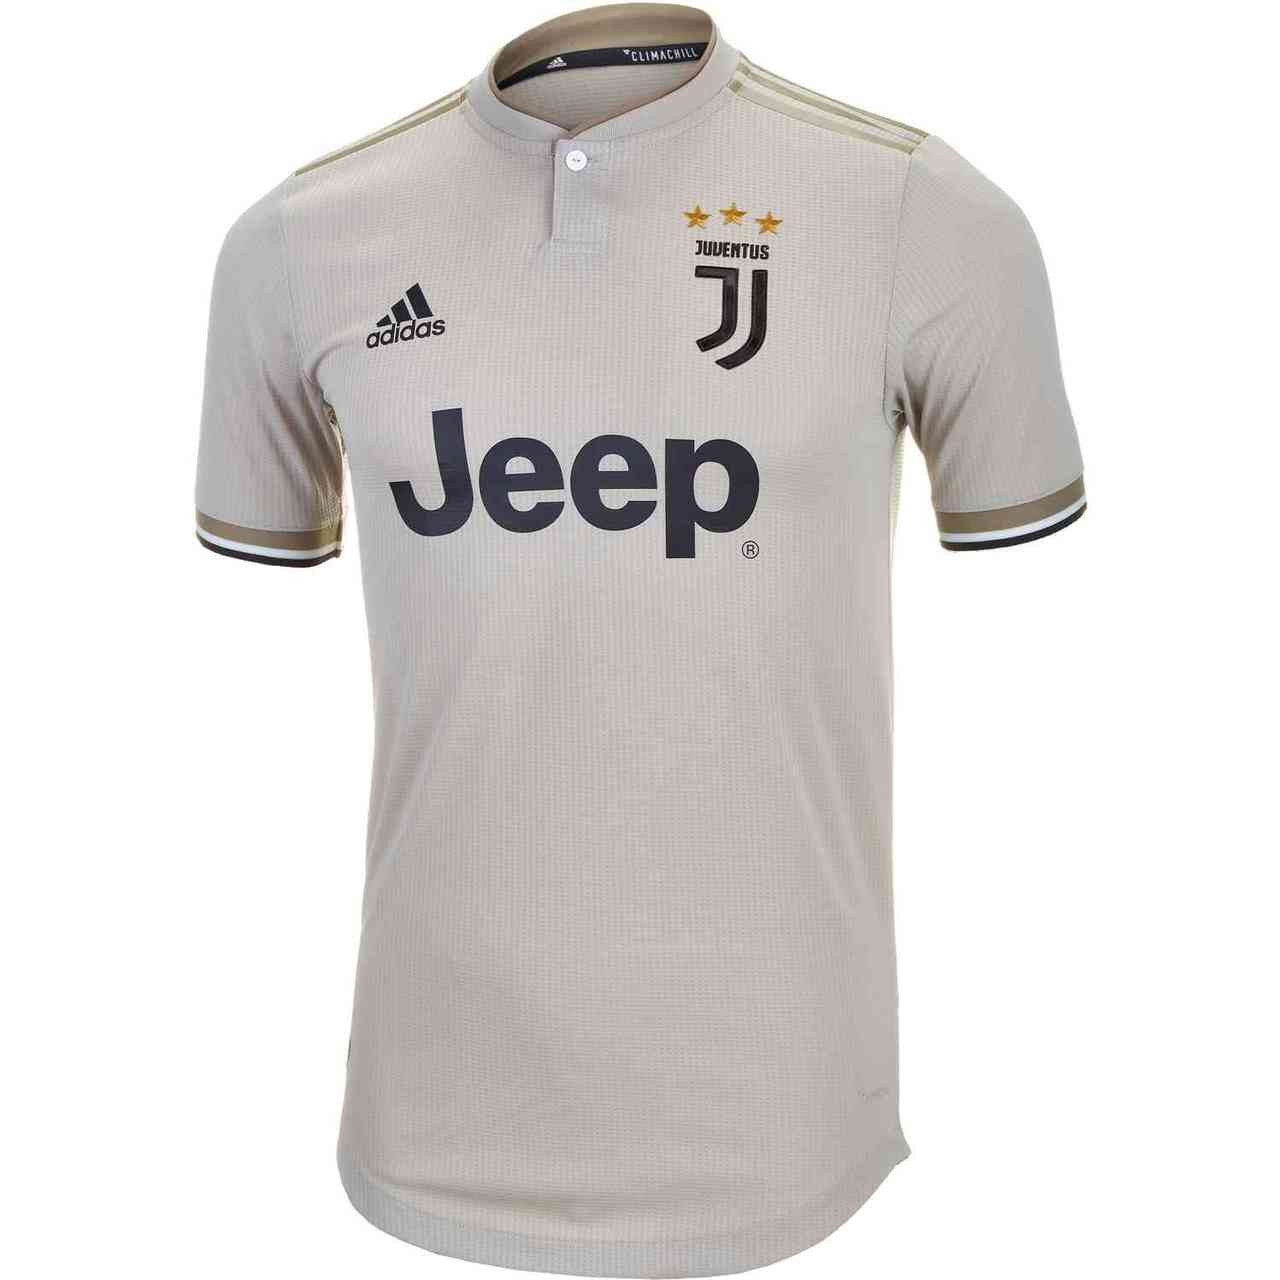 release date 57839 997e3 ADIDAS JUVENTUS 2019 AWAY AUTHENTIC JERSEY